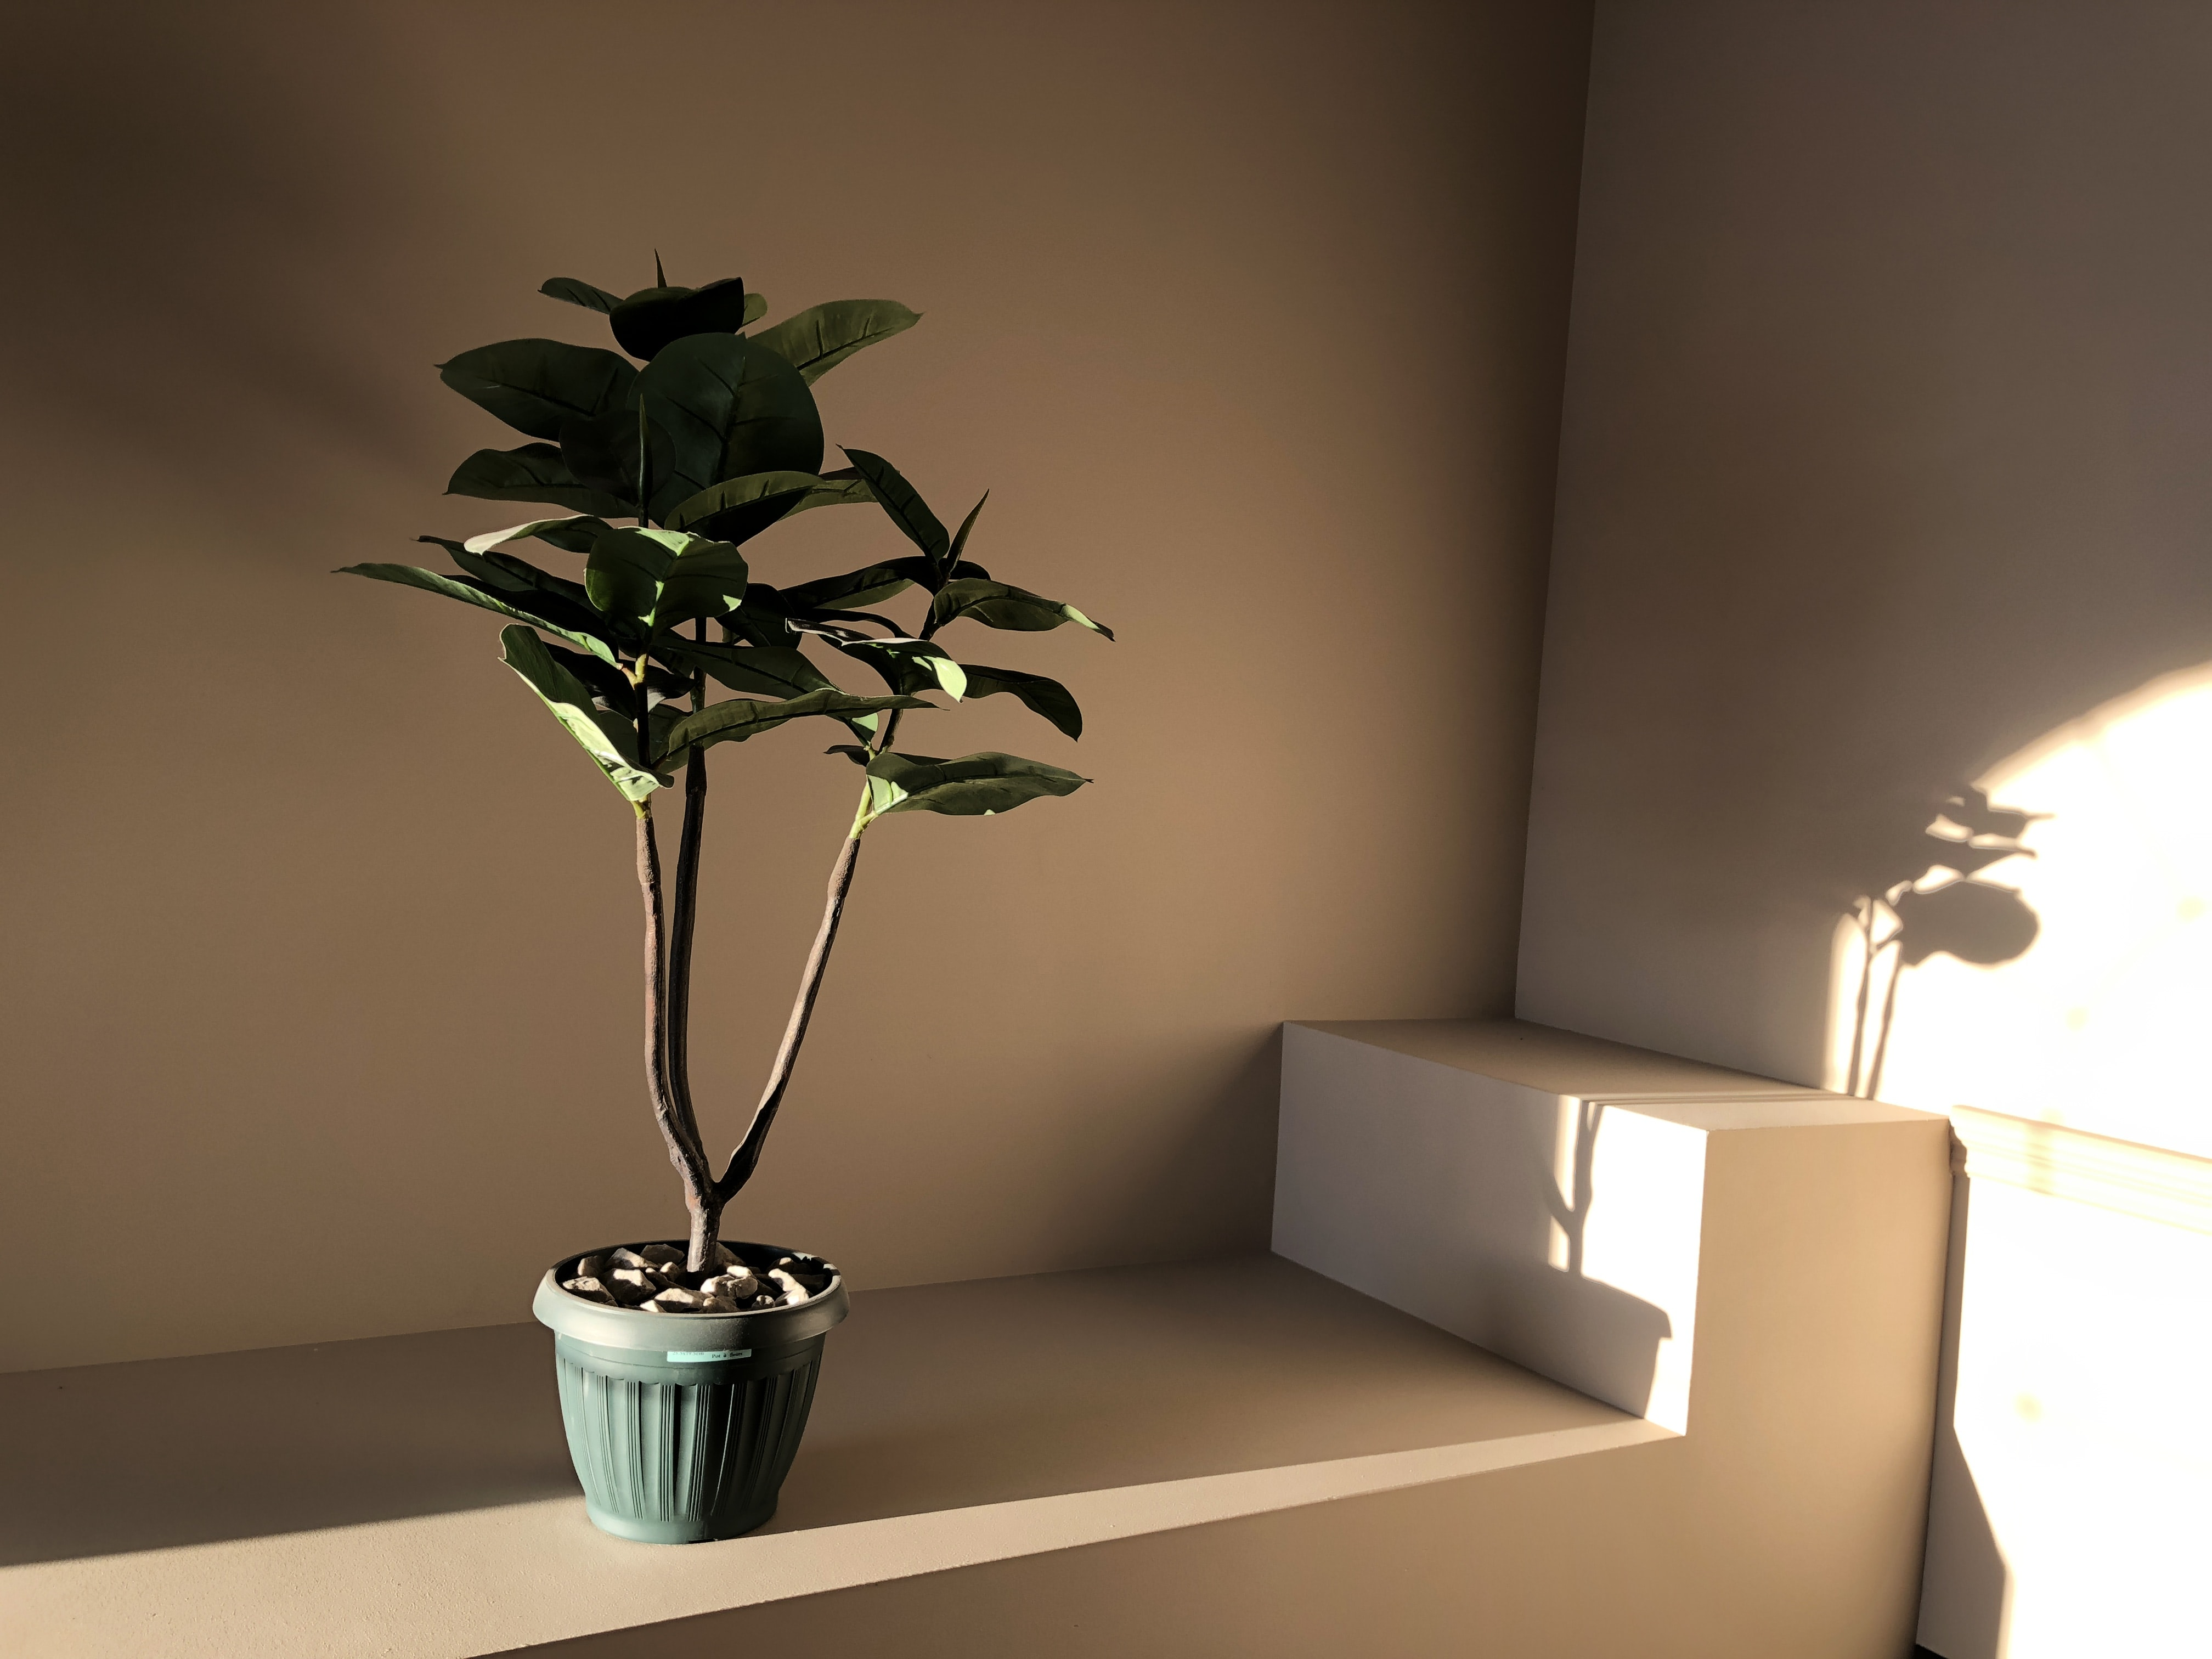 green leafed plant with pot on brown surface